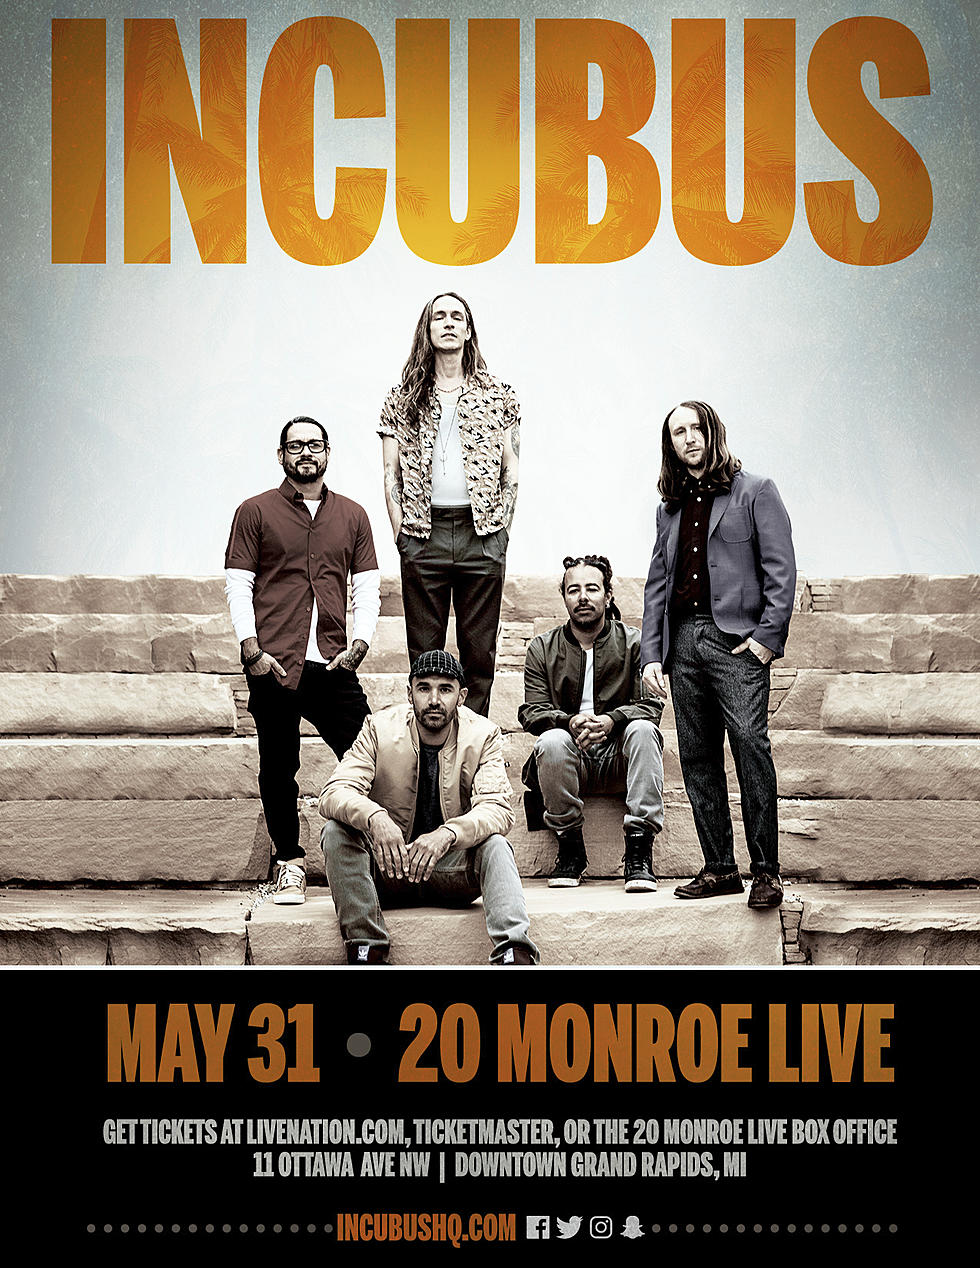 Incubus 20 Monroe Live Sold Out